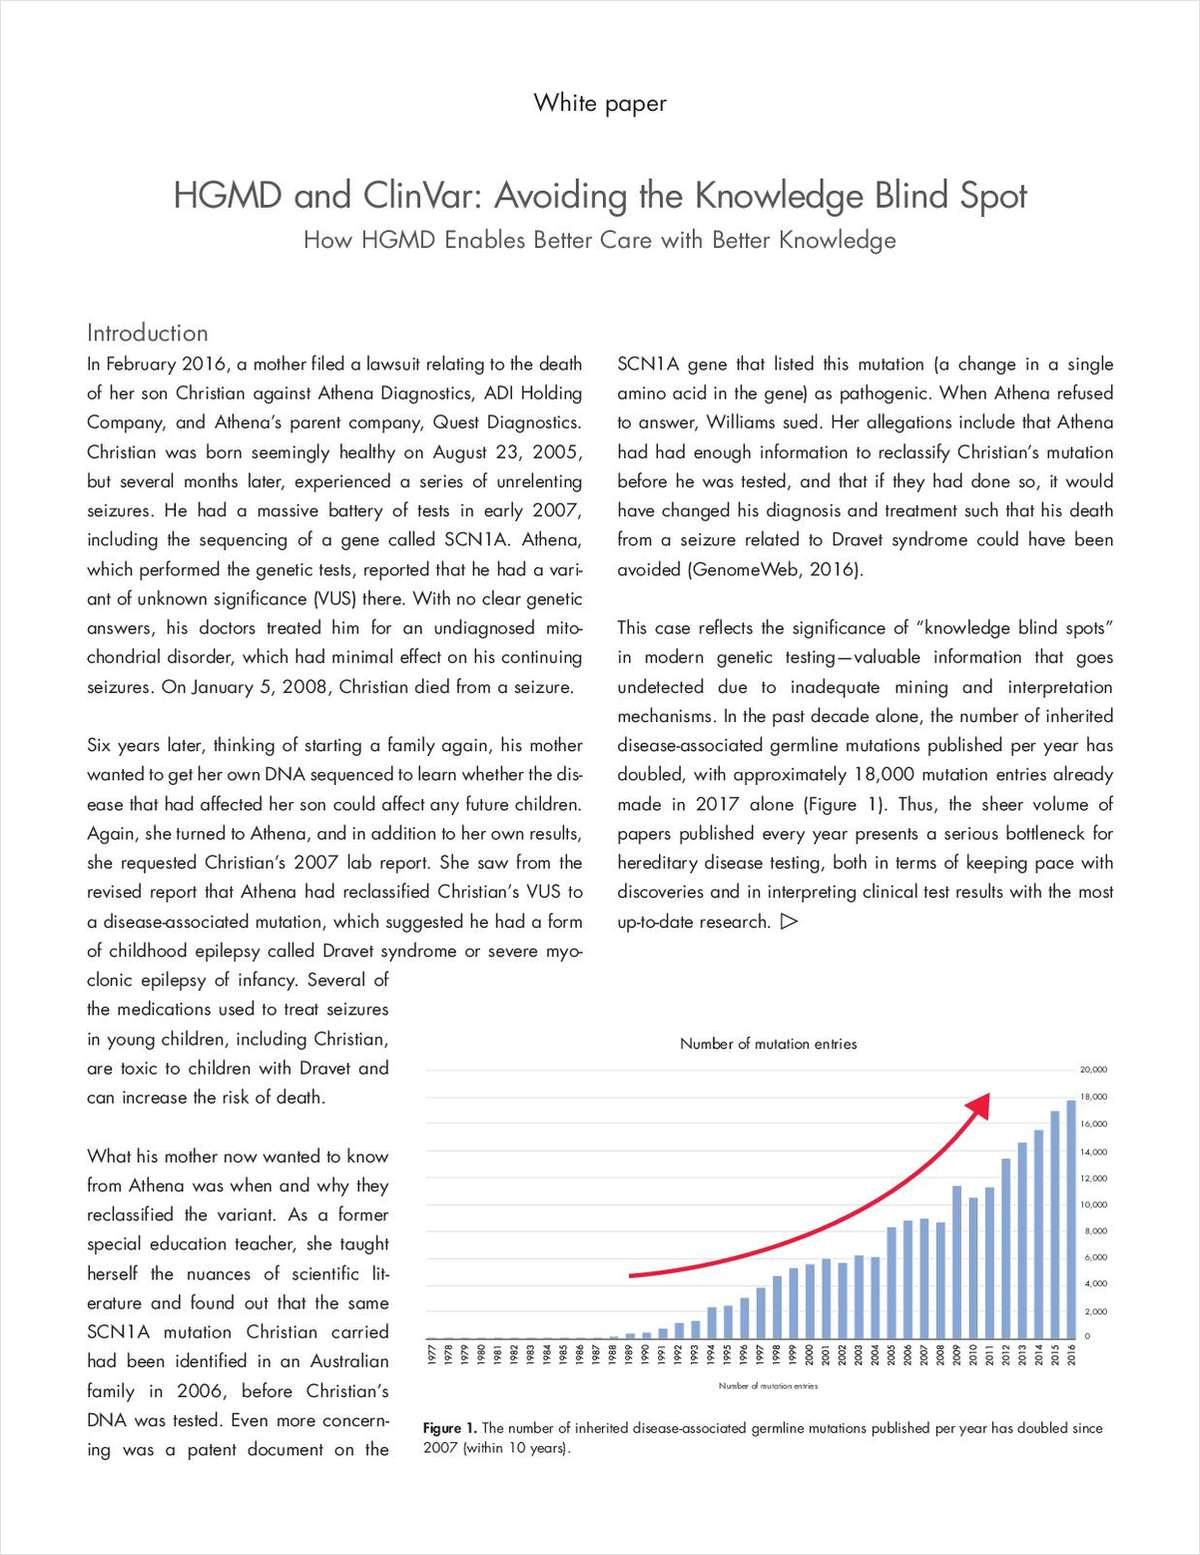 HGMD and ClinVar: Avoiding the Knowledge Blind Spot